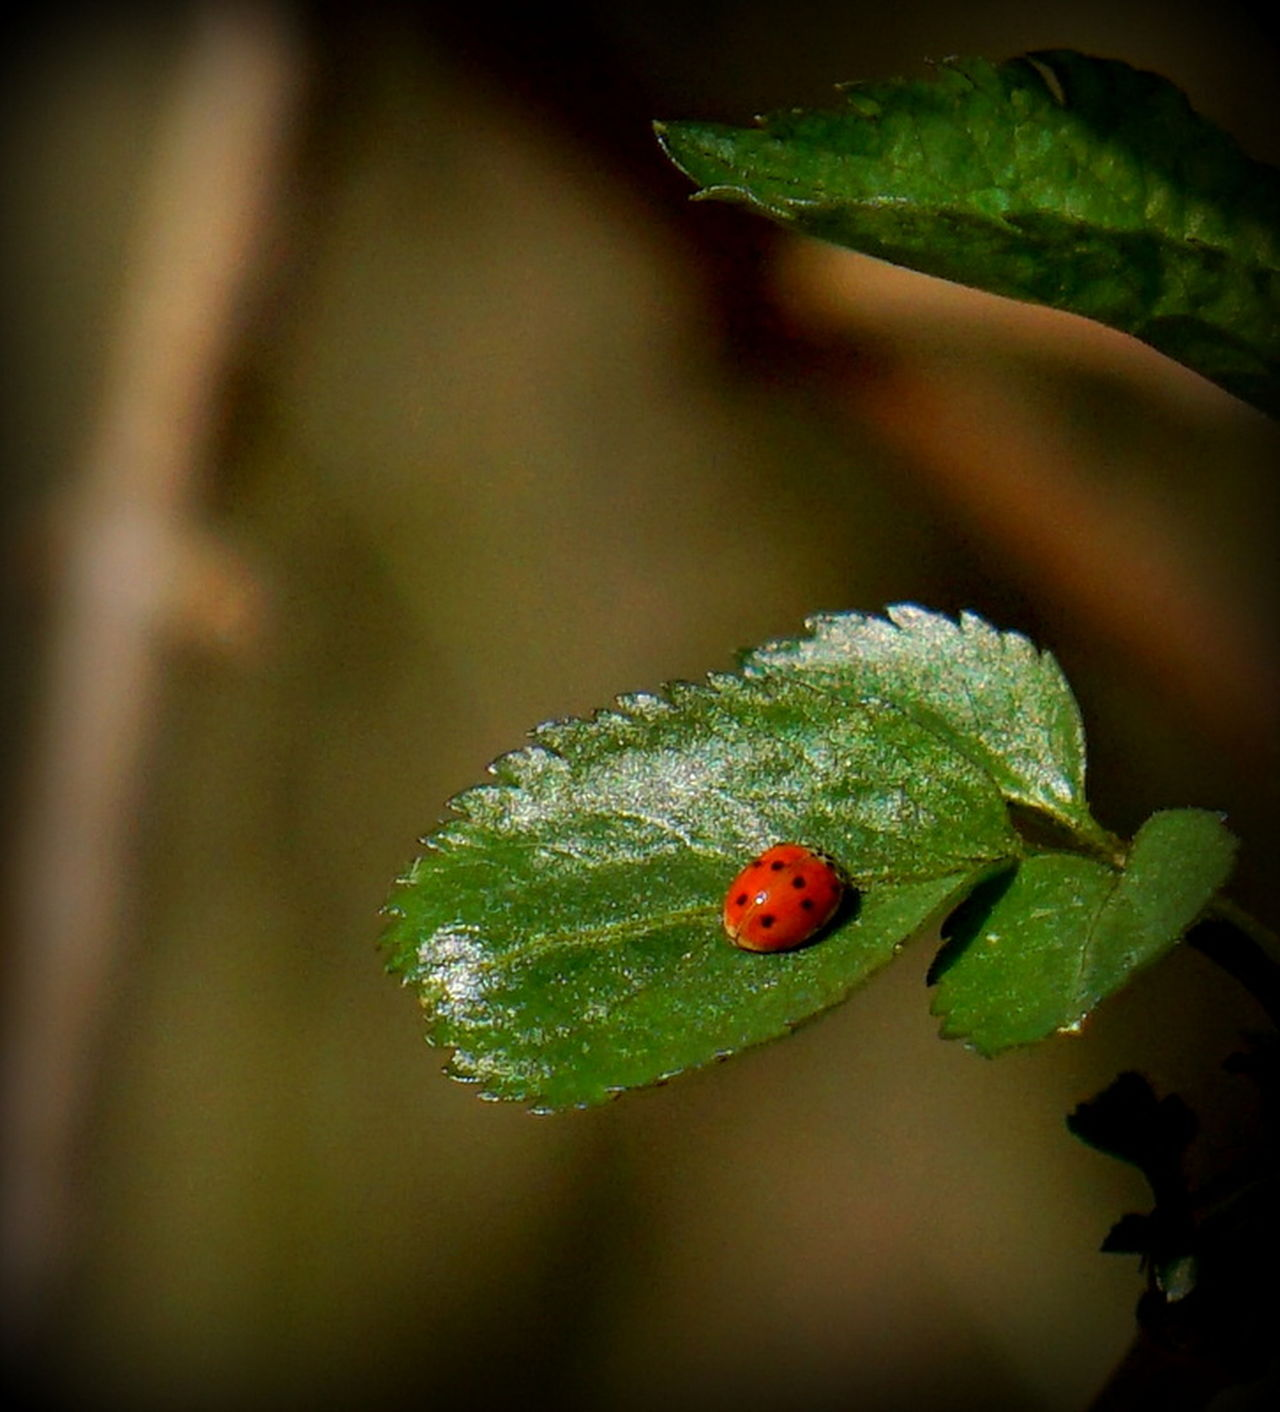 Animal Themes Animal Wildlife Animals In The Wild Beauty In Nature Close-up Day Focus On Foreground Insect Ladybug Leaf Nature No People One Animal Outdoors